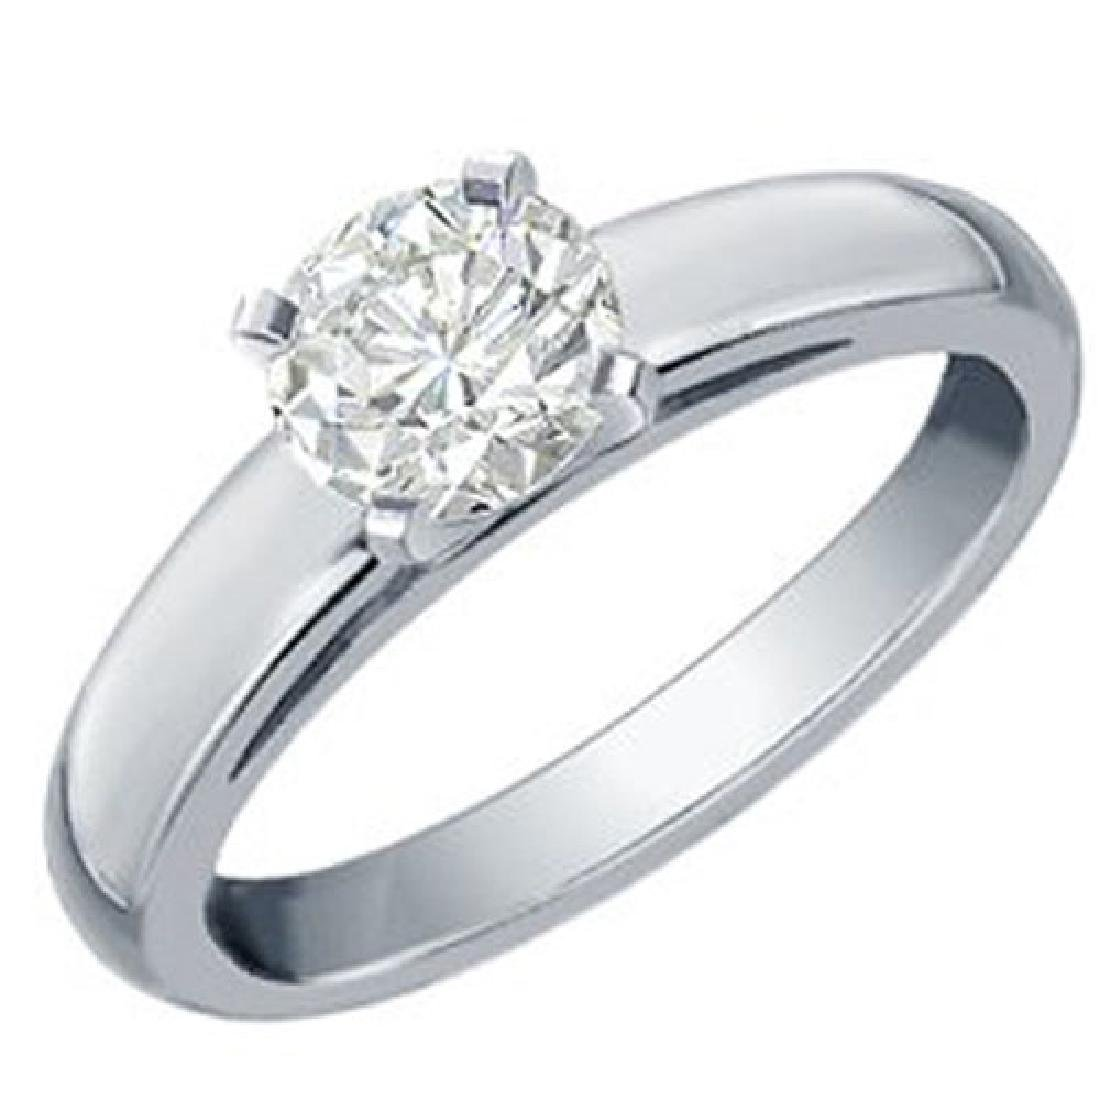 0.60 CTW Certified VS/SI Diamond Solitaire Ring 18K